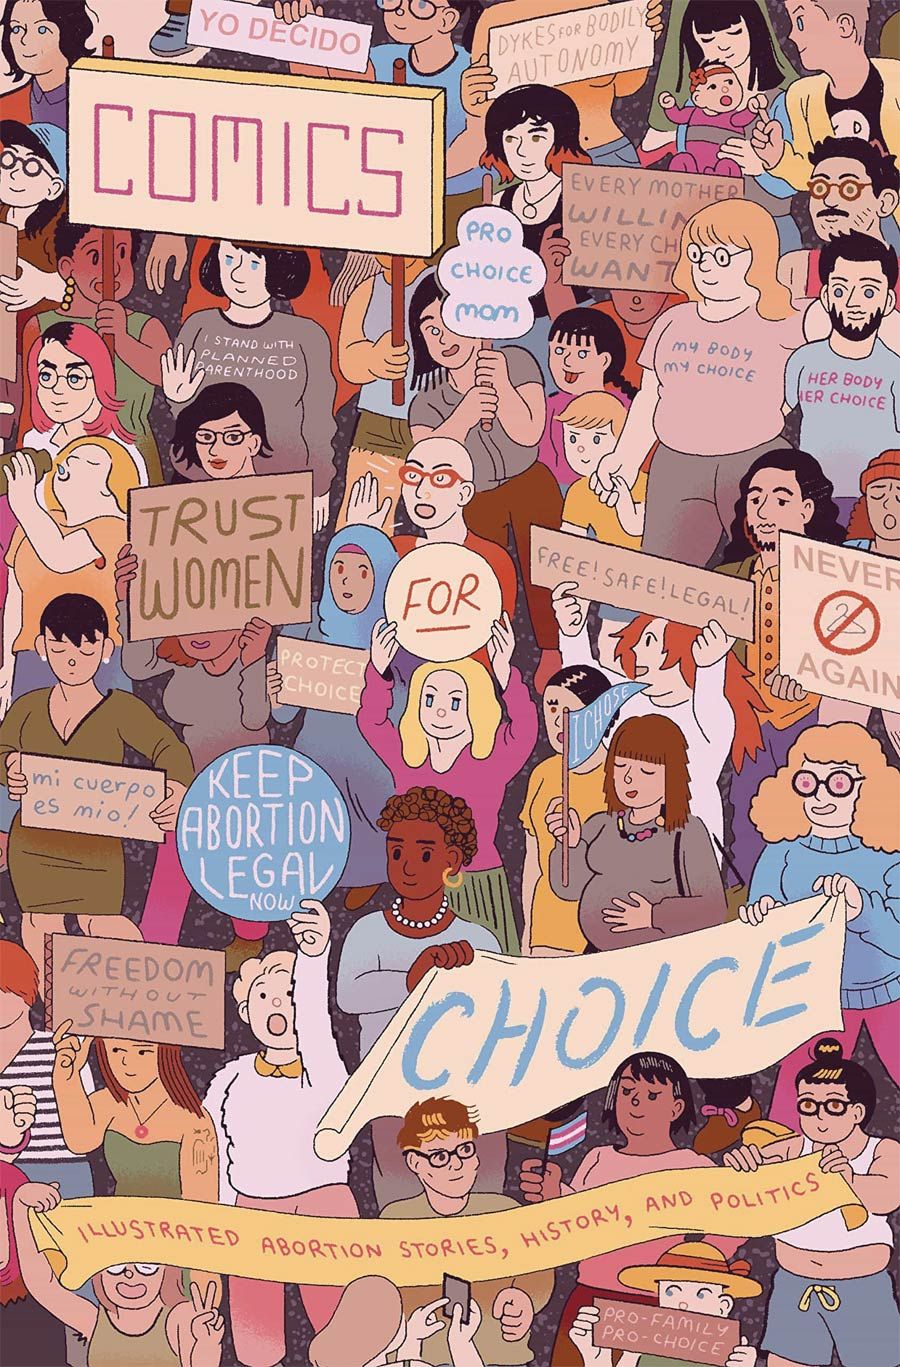 Comics For Choice Illustrated Abortion Stories History And Politics TP